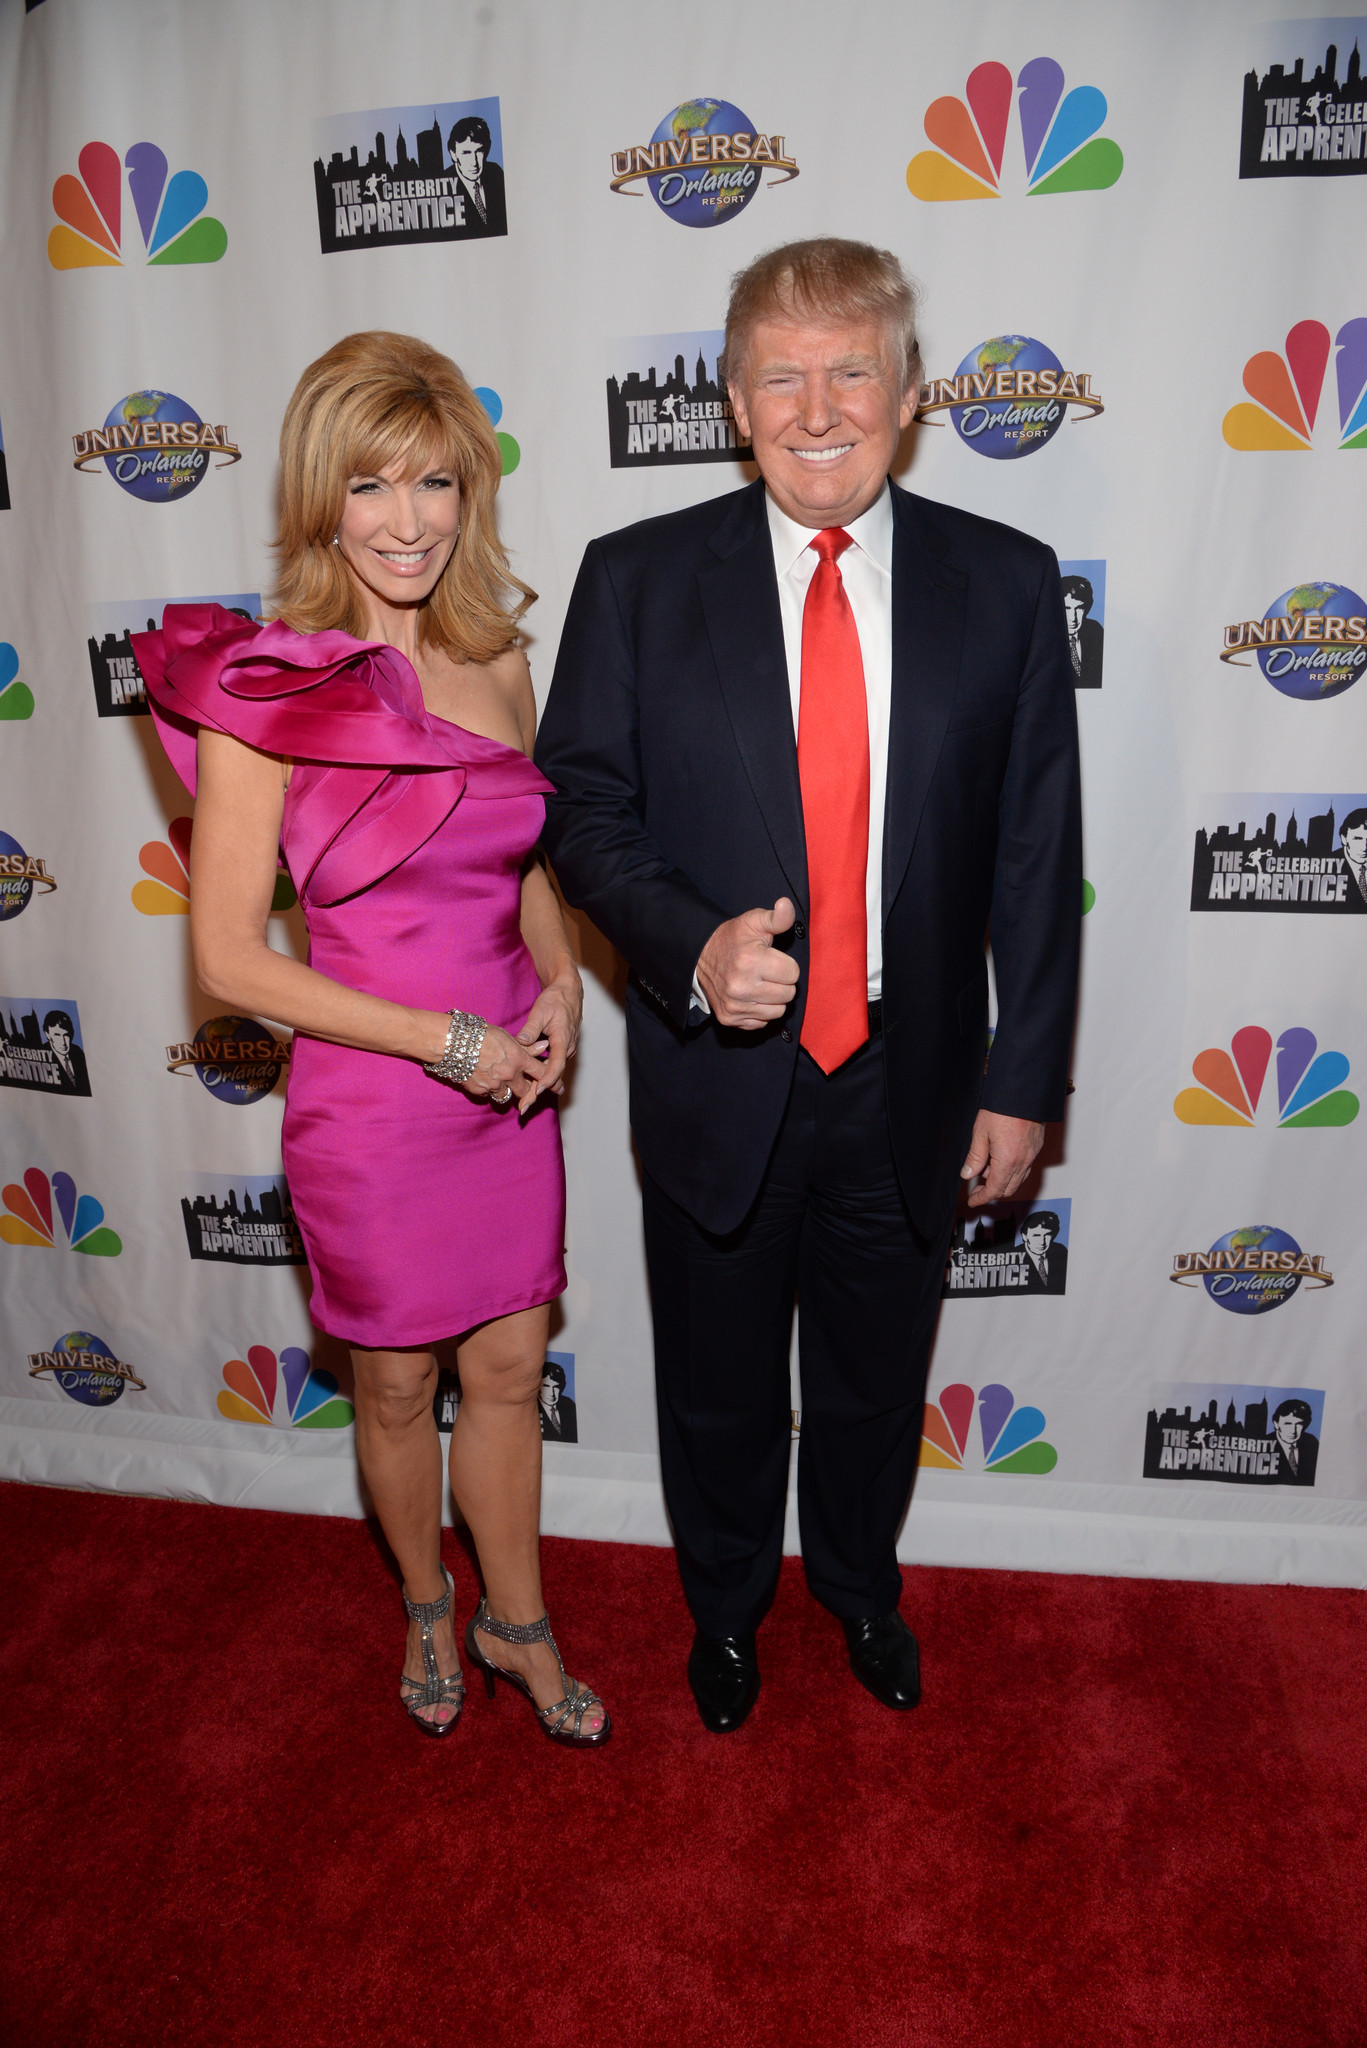 'The Celebrity Apprentice' Sneak Peek: Annie Duke Goes Berserk